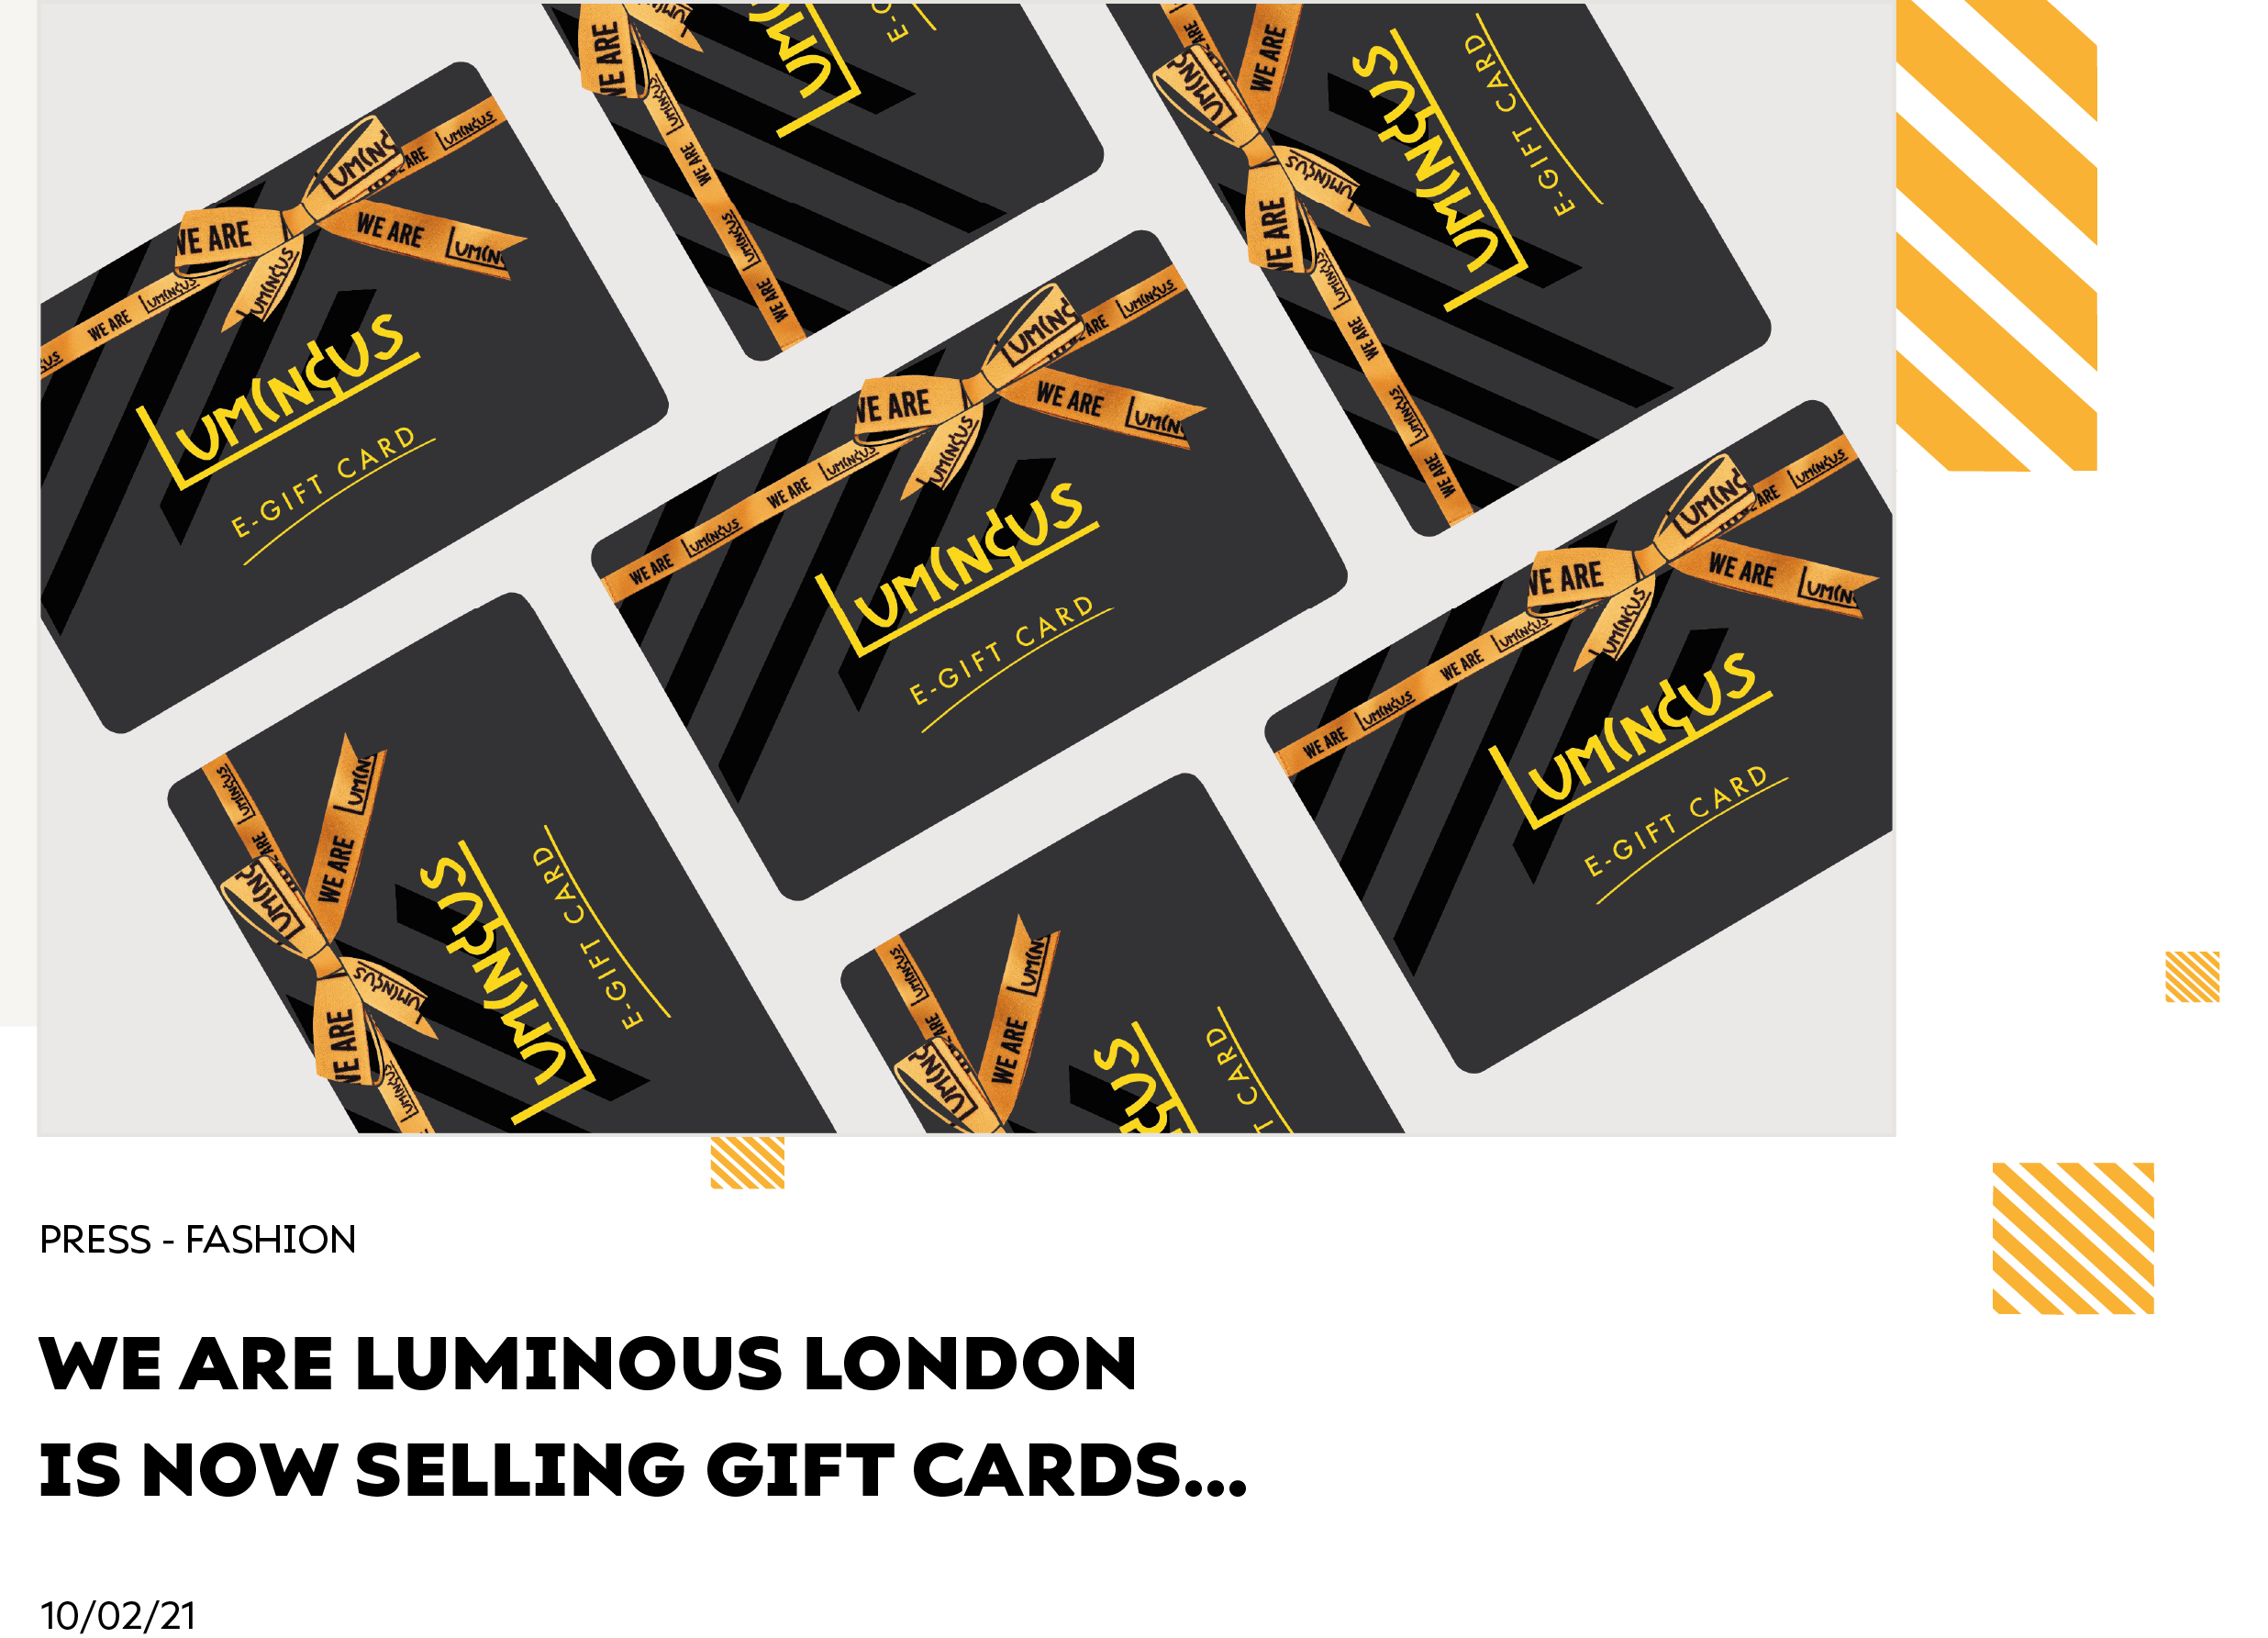 We Are Luminous London Is now Selling Gift Cards...